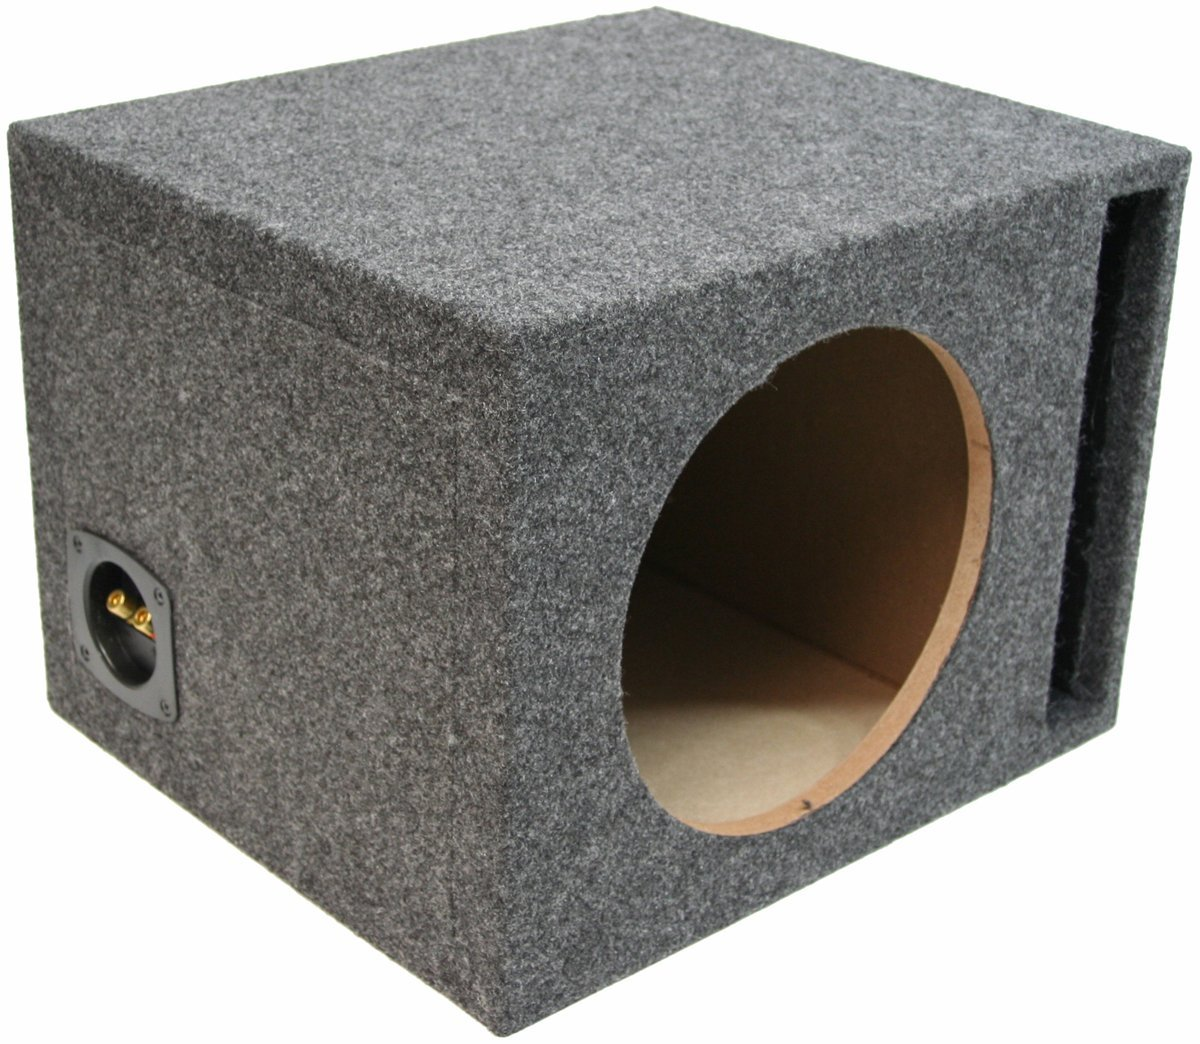 ASC Single 12'' Subwoofer Universal Fit Vented Port Sub Box Speaker Enclosure by American Sound Connection (Image #1)